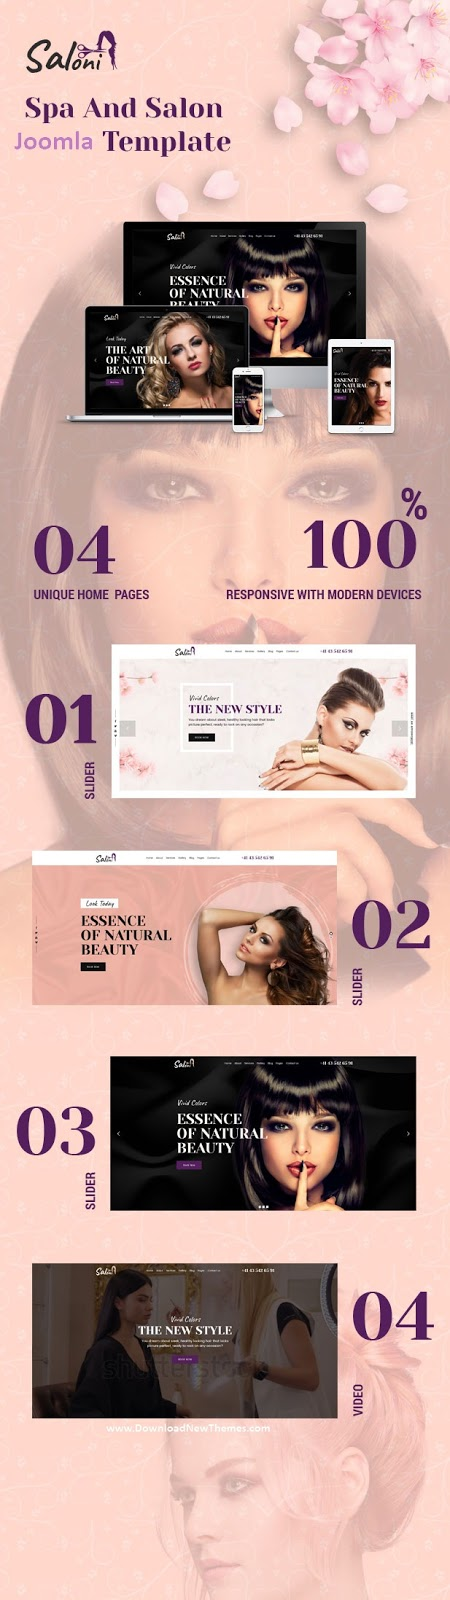 Best Spa and Salon Website Template